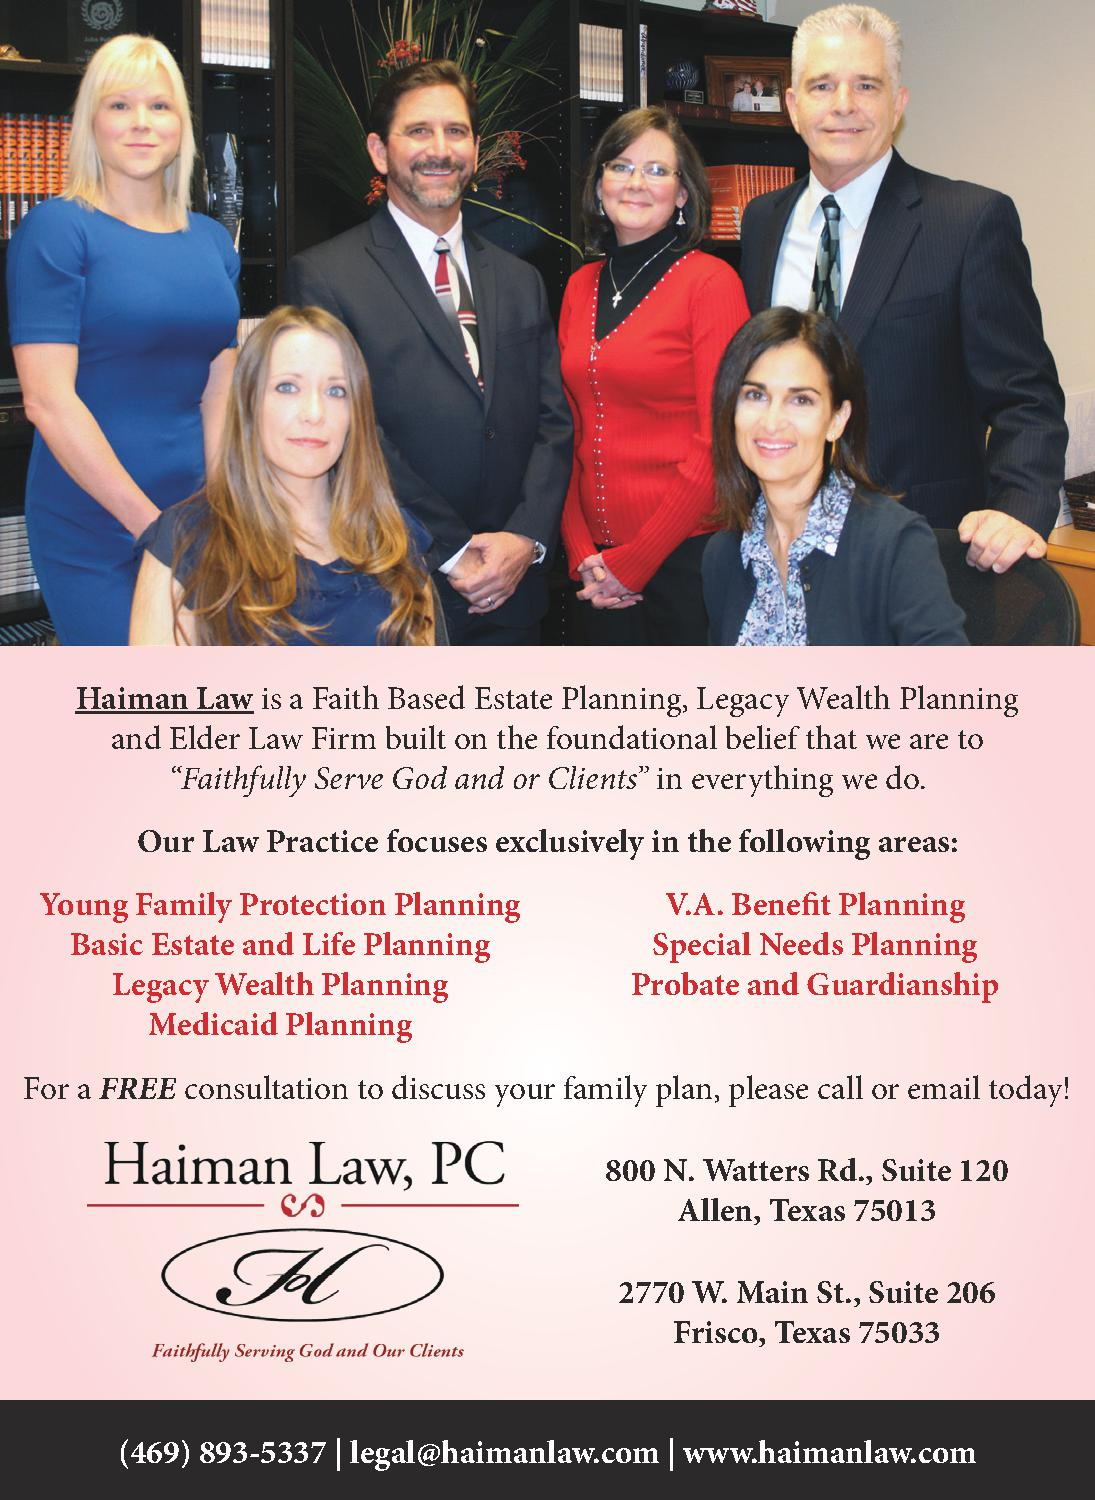 Haiman Law, PC